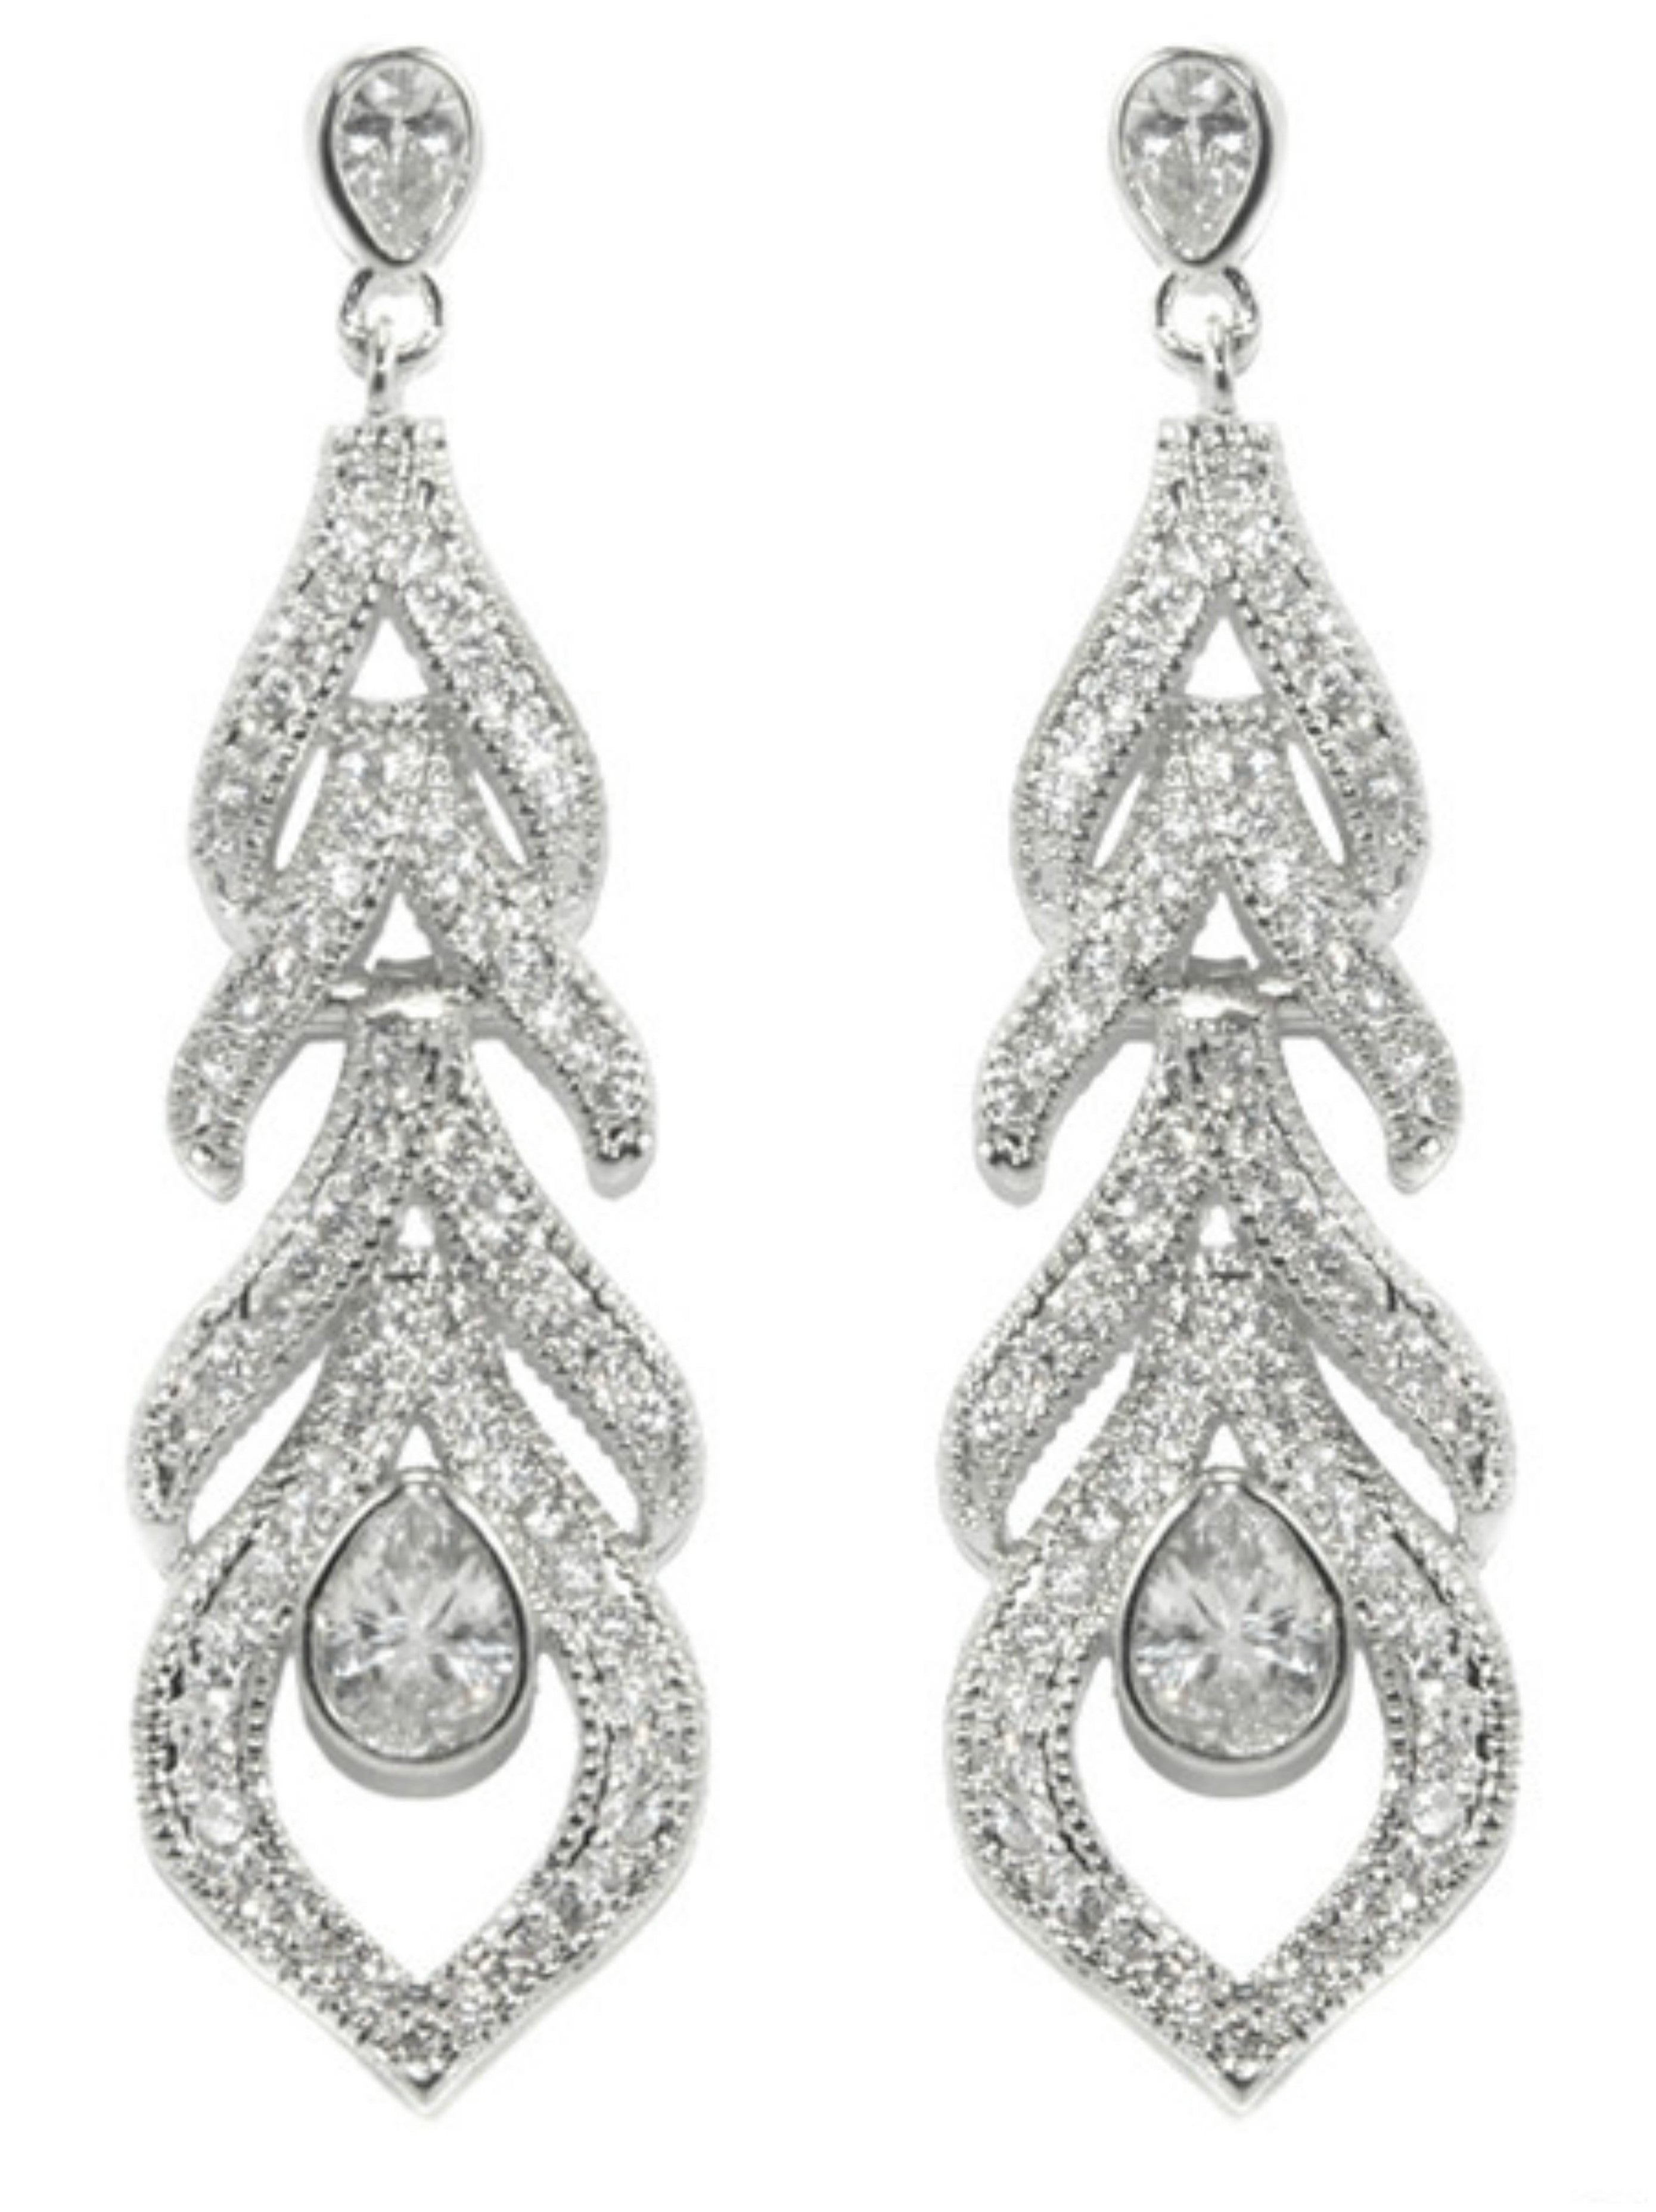 4ad46de68f1d90 Home > Products > Calliope CZ Feather Dangle Chandelier Earrings | Cubic  Zirconia